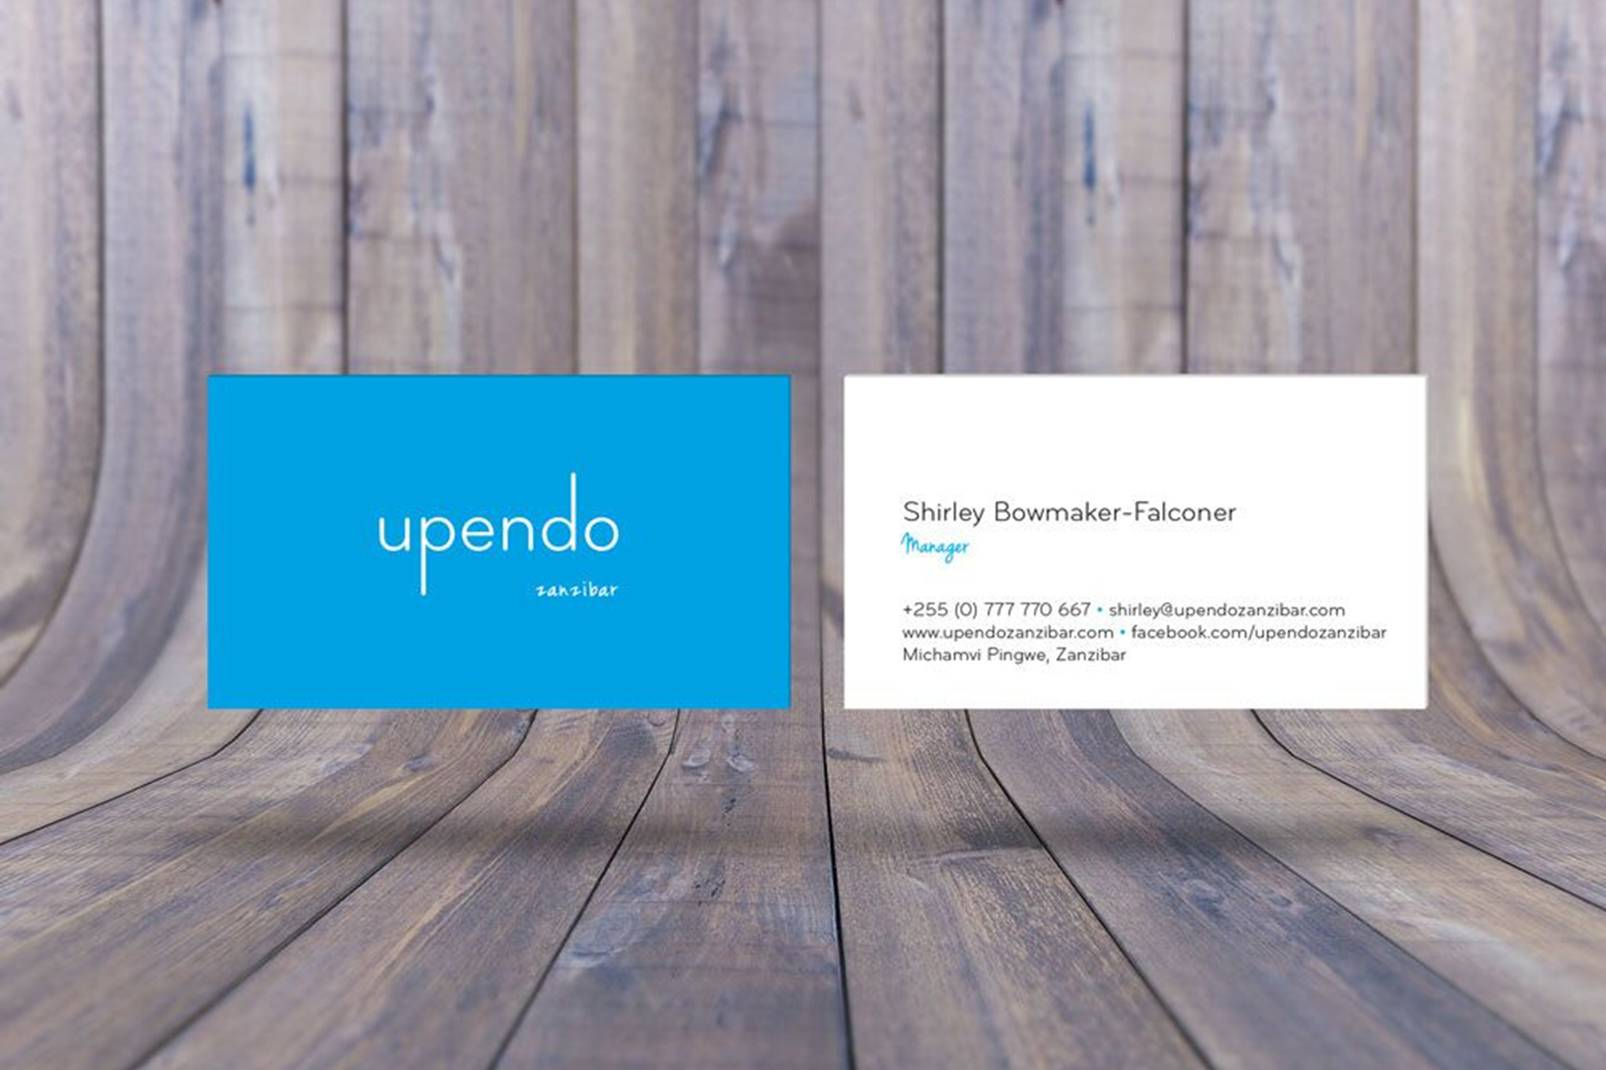 business cards and wooden planks